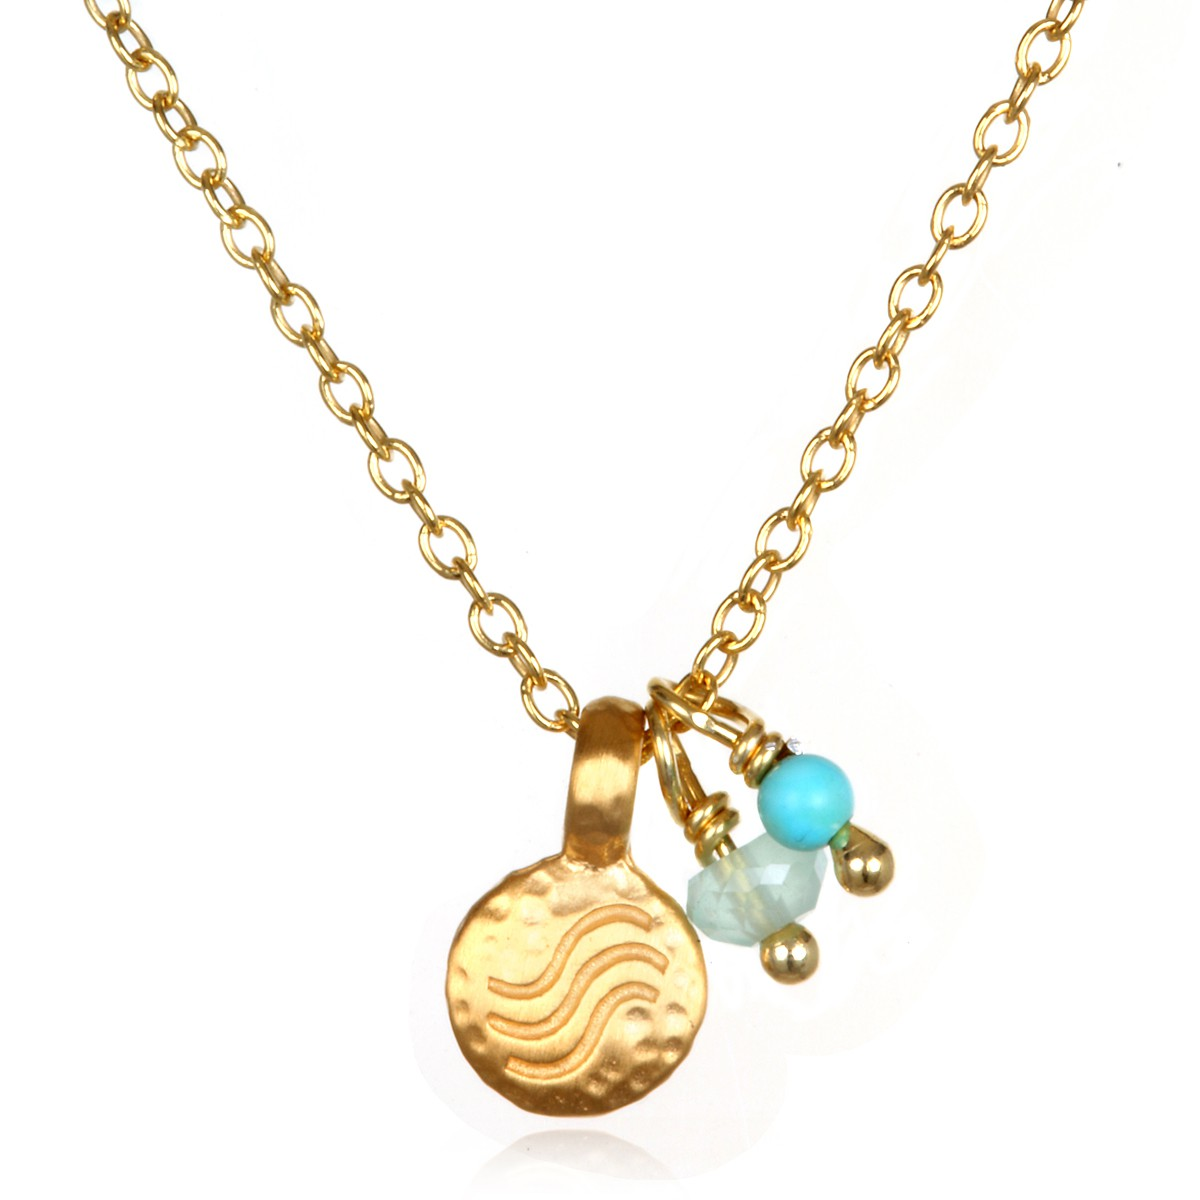 Satya Rainwater Necklace In Gold